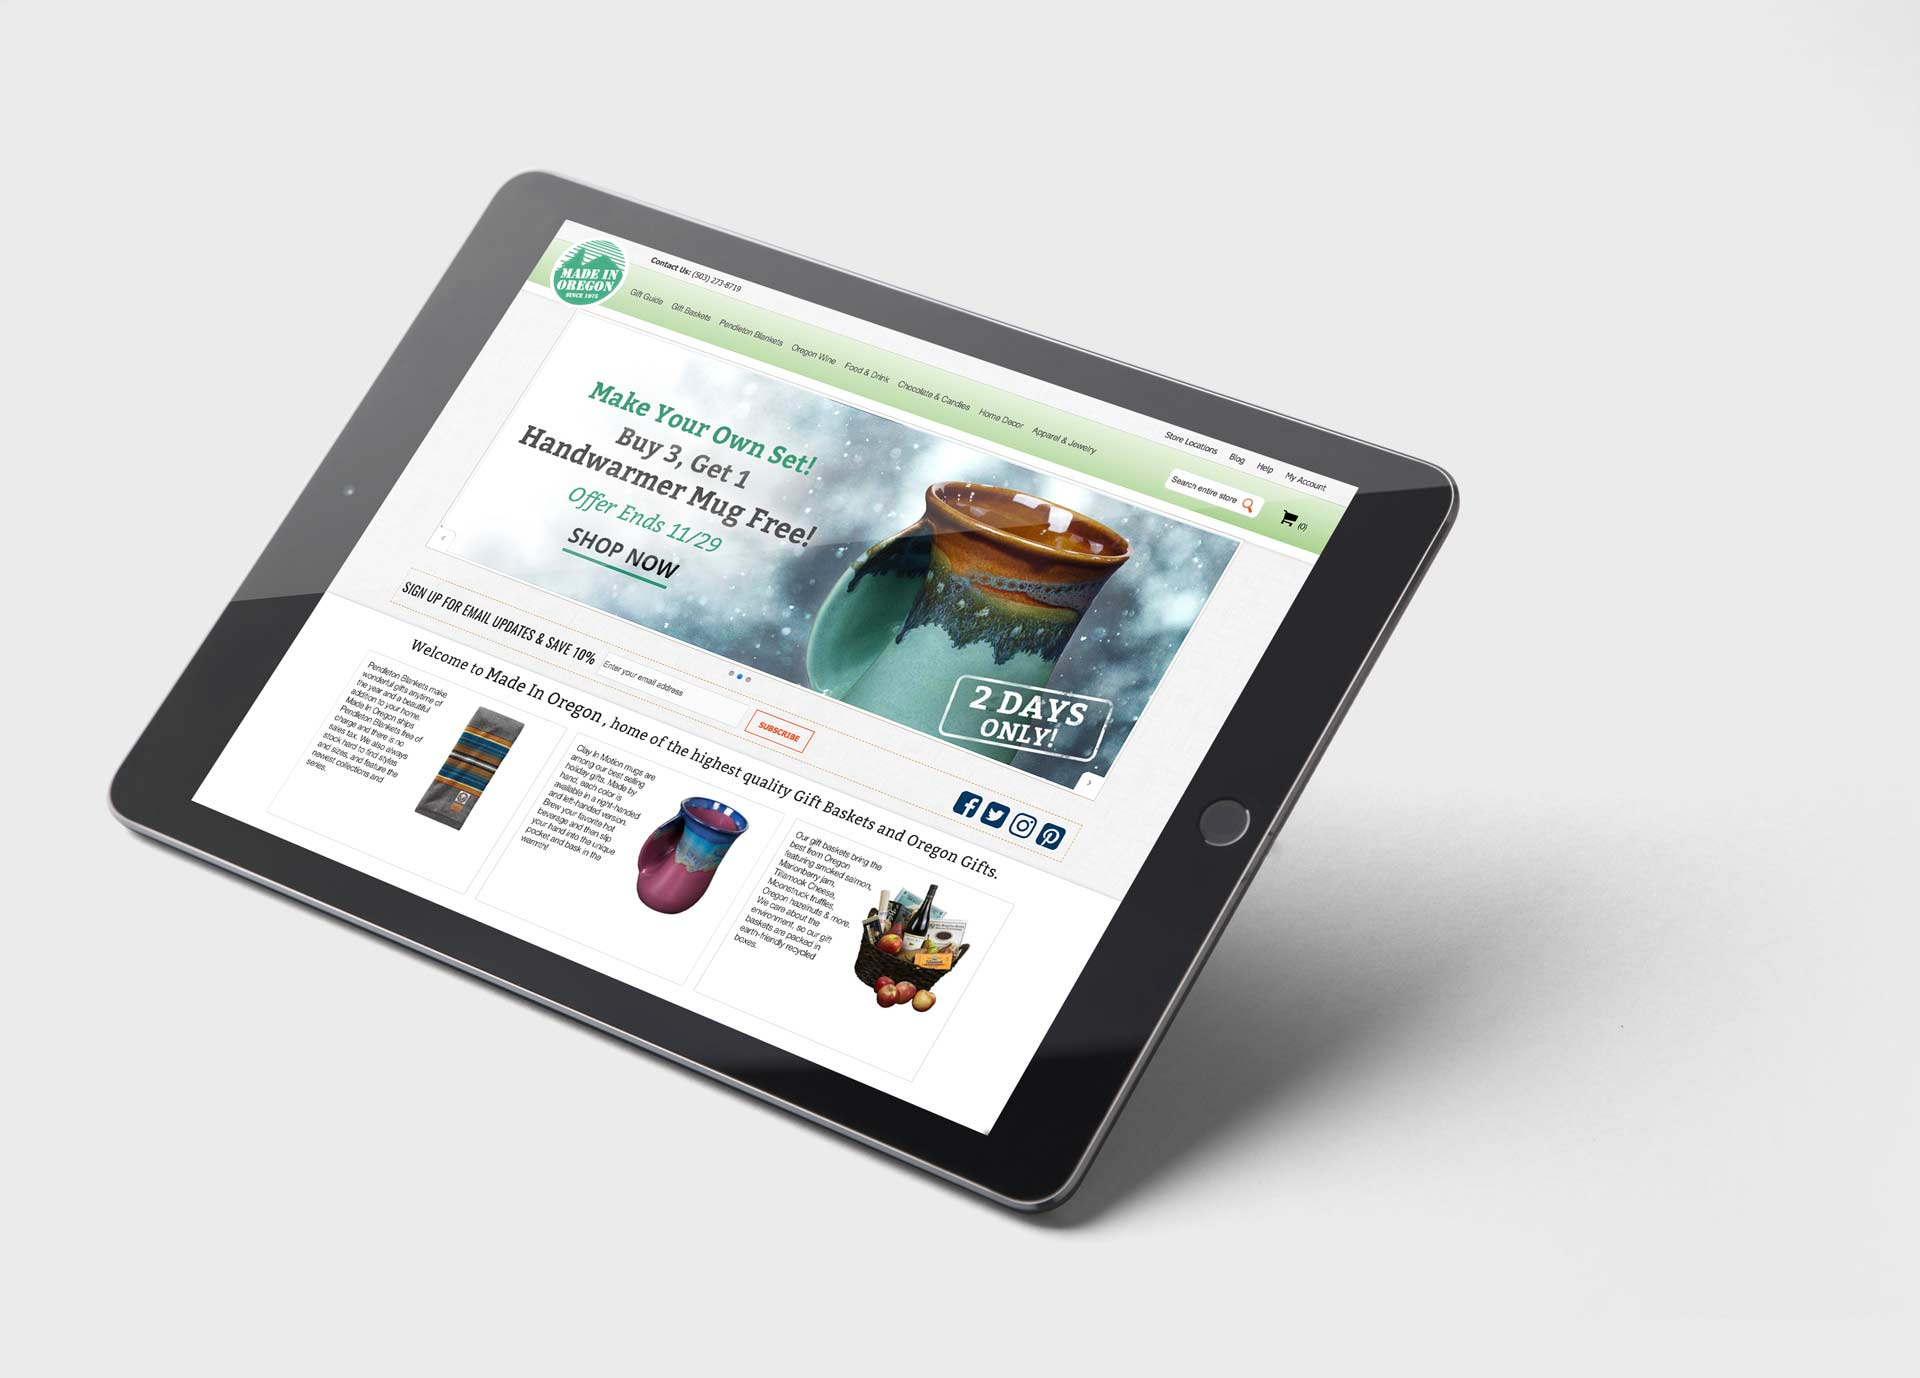 website banner mockup tablet design cta image holidays coffee mug